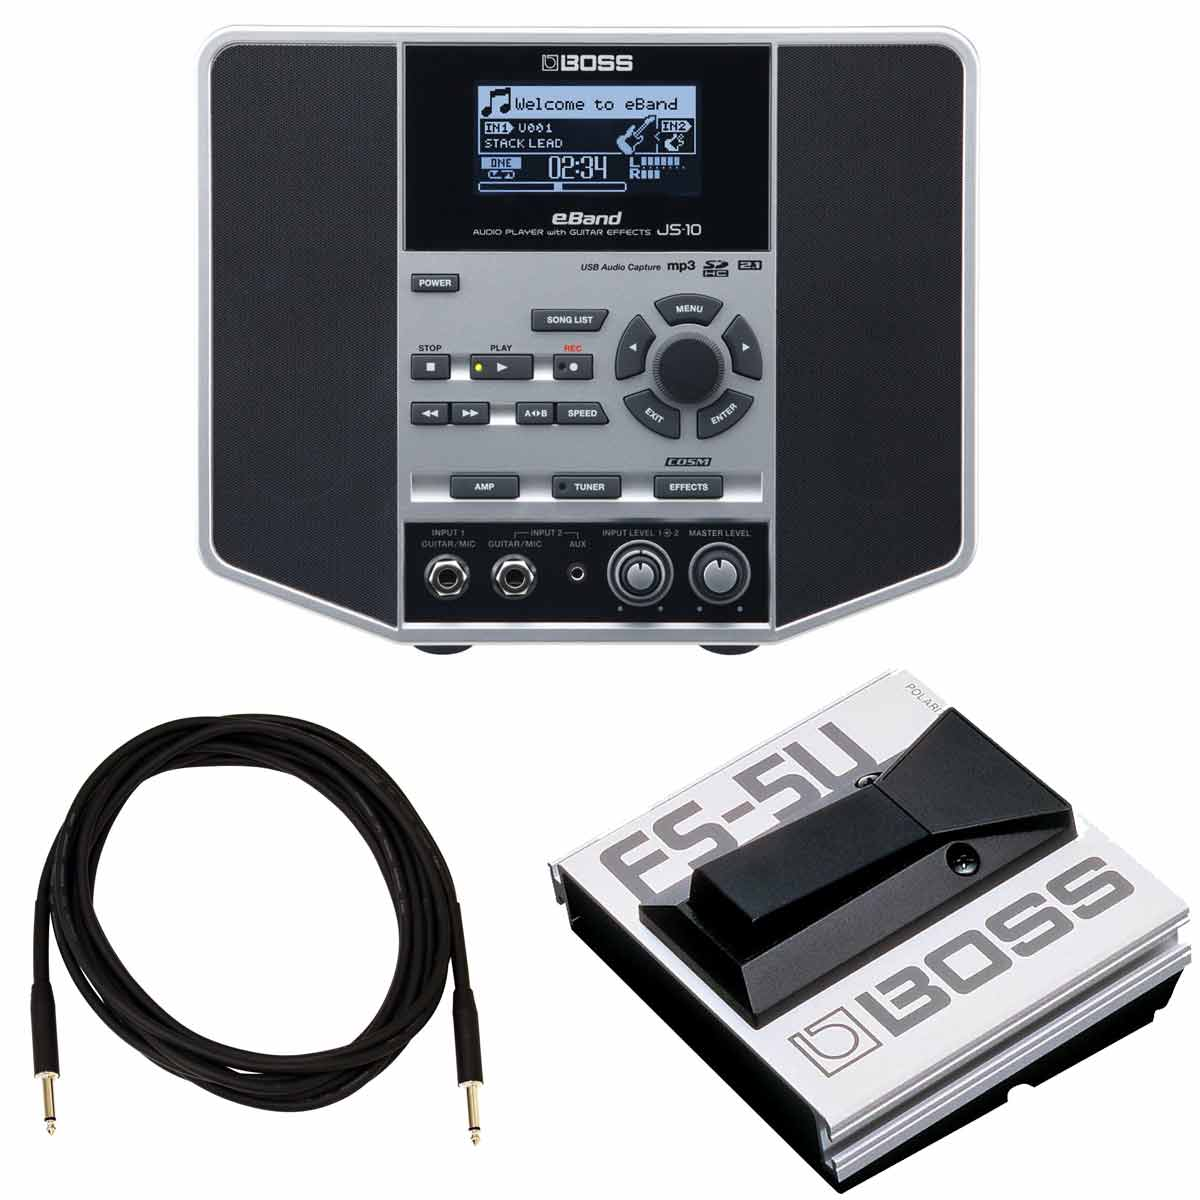 BOSS / eBand JS-10 【FS-5U純正オプションフットスイッチセット】 AUDIO PLAYER with GUITAR EFFECTS【YRK】